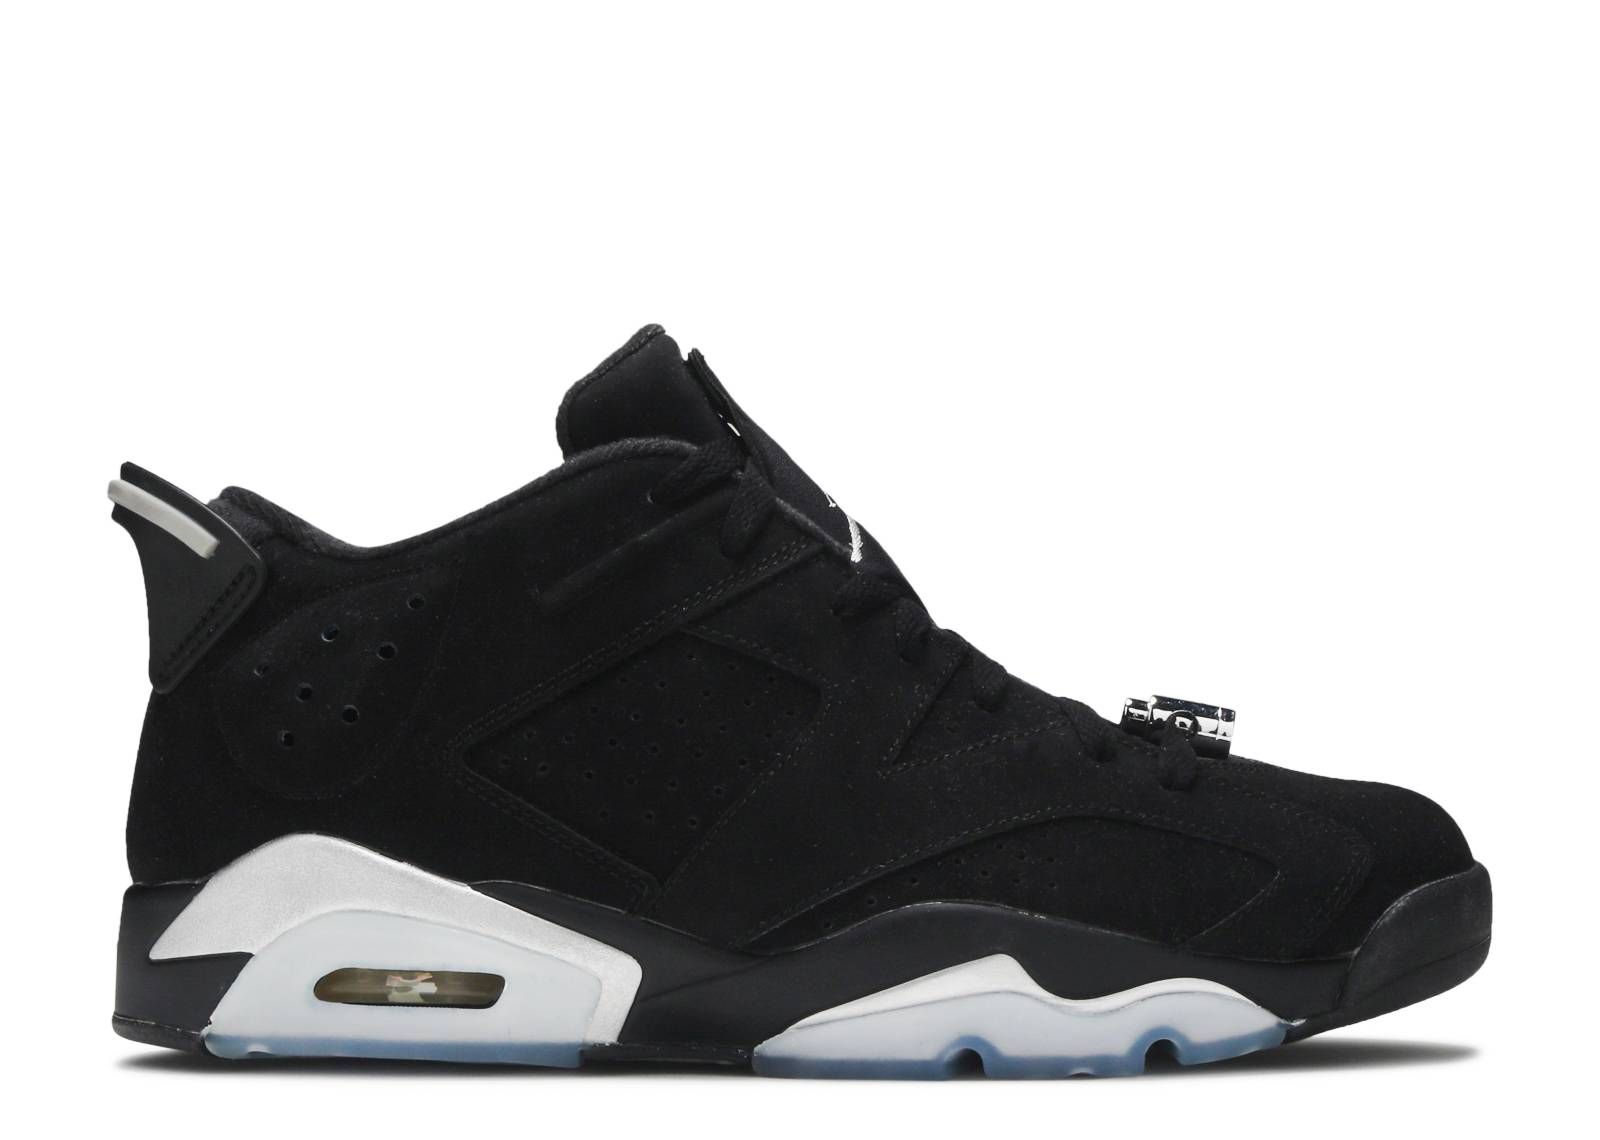 low priced 0790c d7ffb air jordan 6 retro low